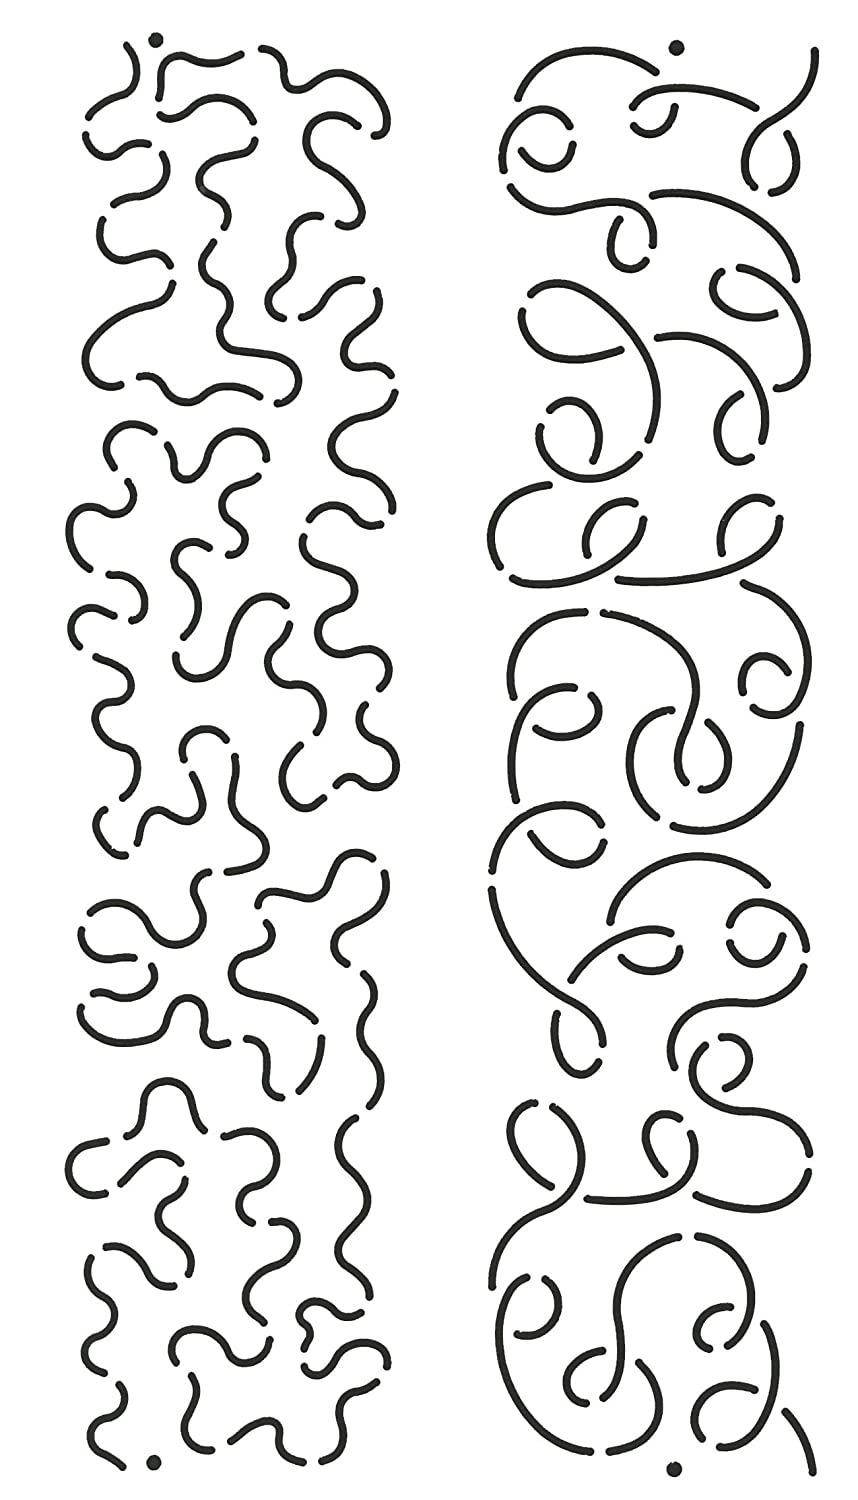 Quilting Creations Loop and Stipple Sashing Quilt Stencil 2-1//2